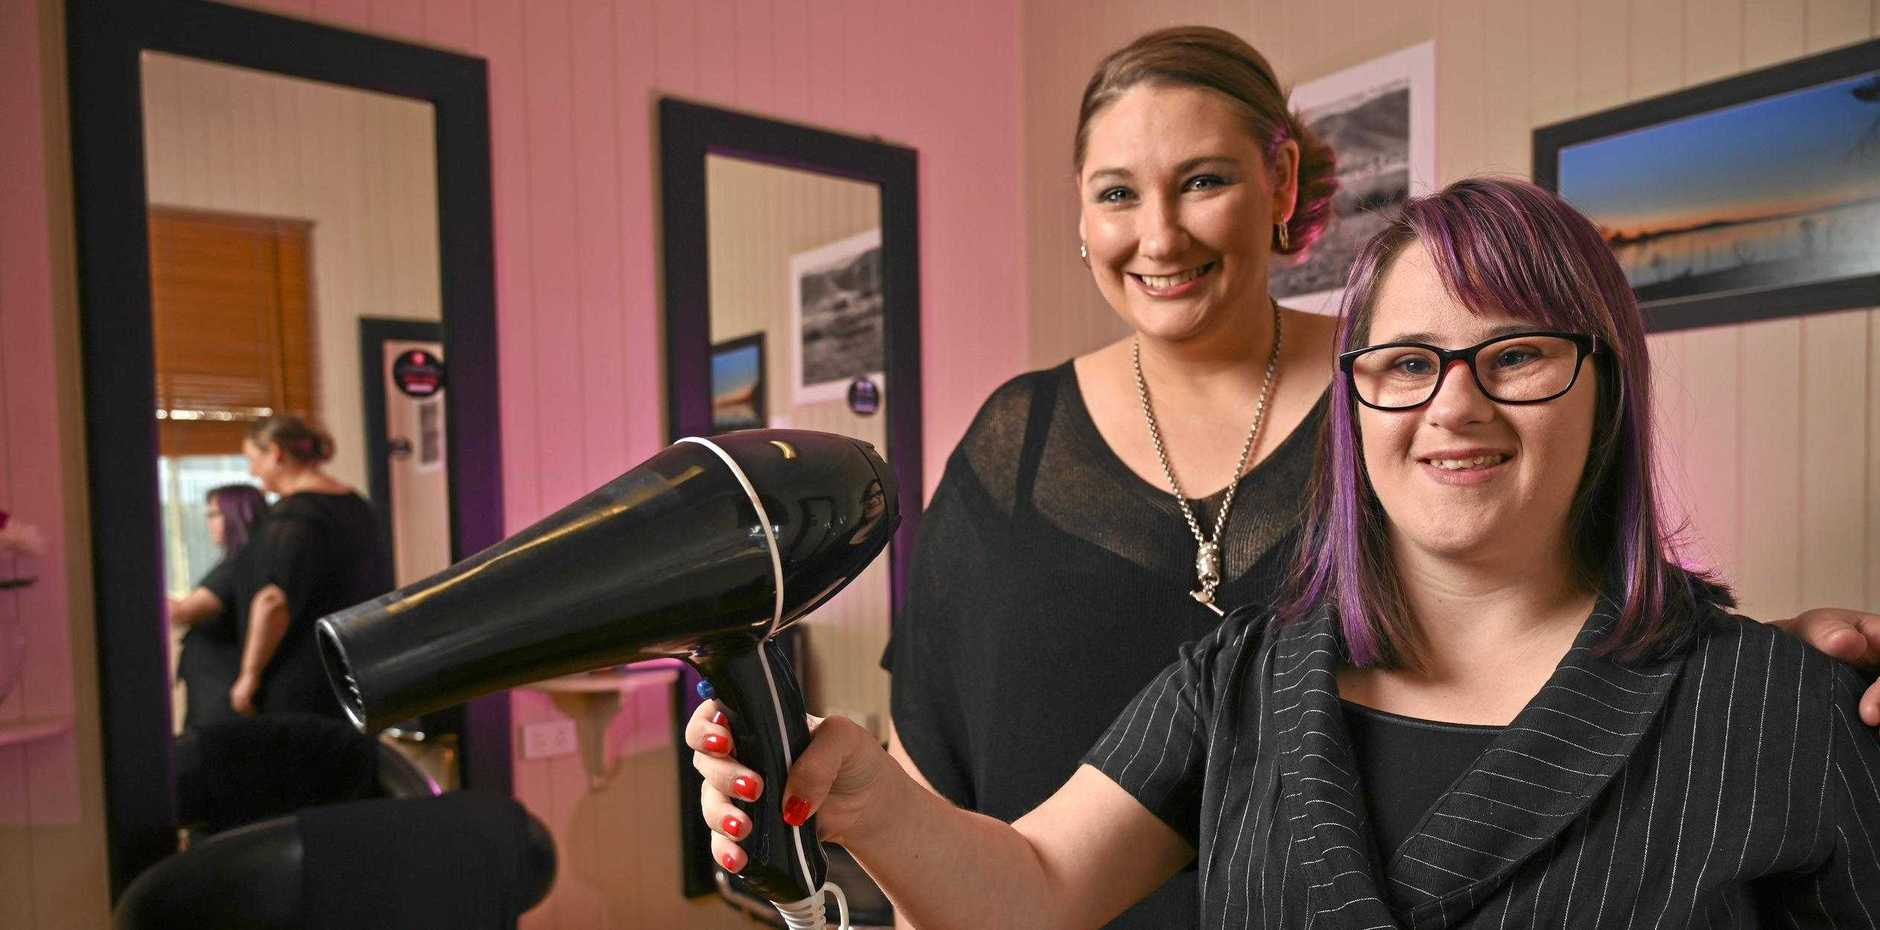 BLOWN AWAY:   Lexie Ingram, who has Down syndrome, has found her dream job   at a hairdressing salon owned by Shelley Gehrke.